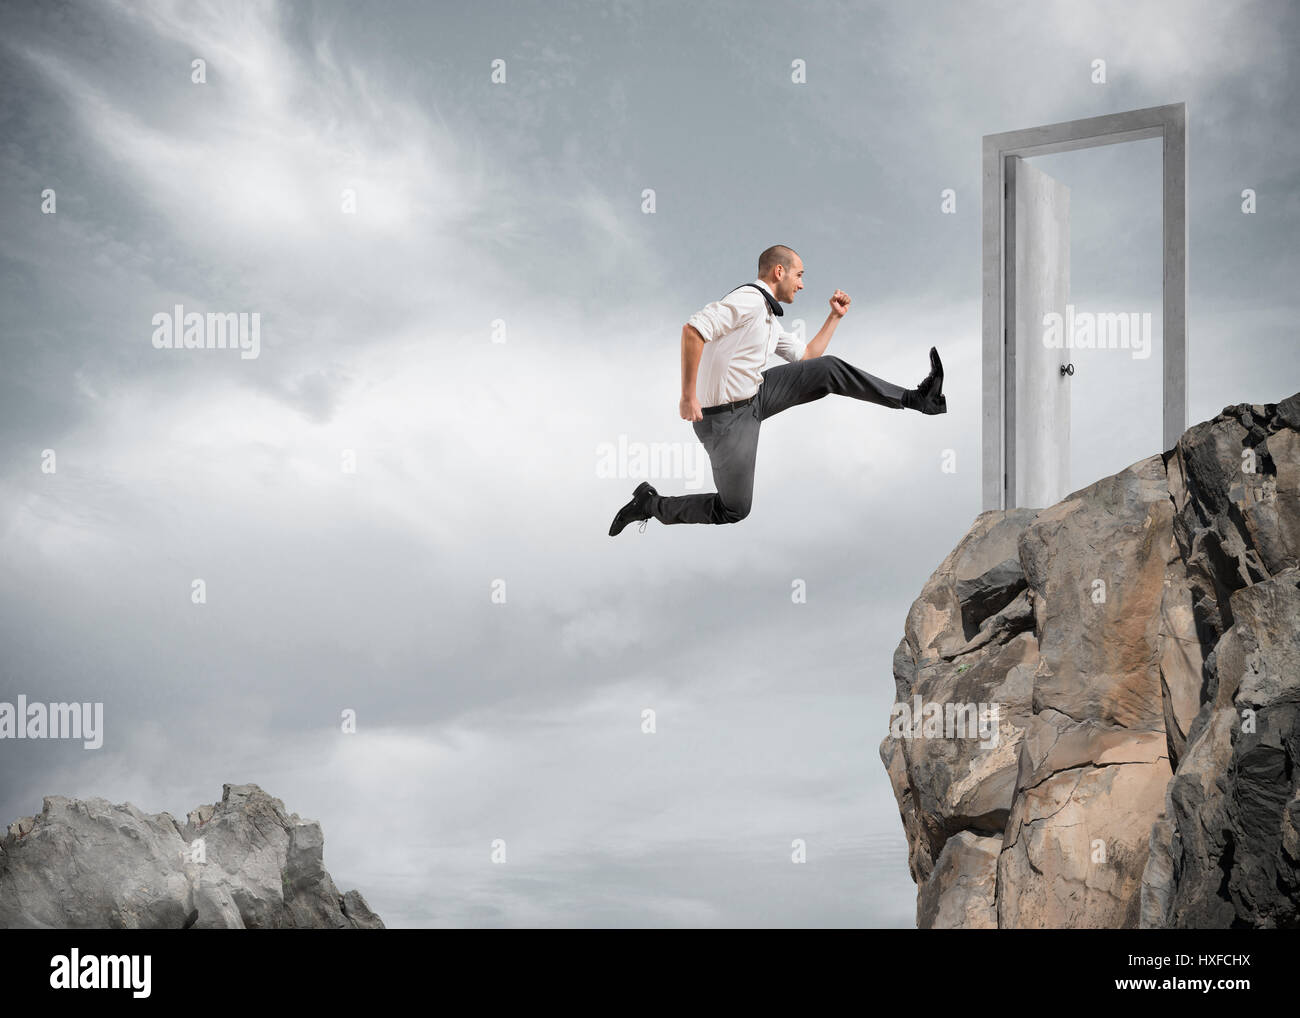 Businessman jumping over the mountains to reach a door - Stock Image